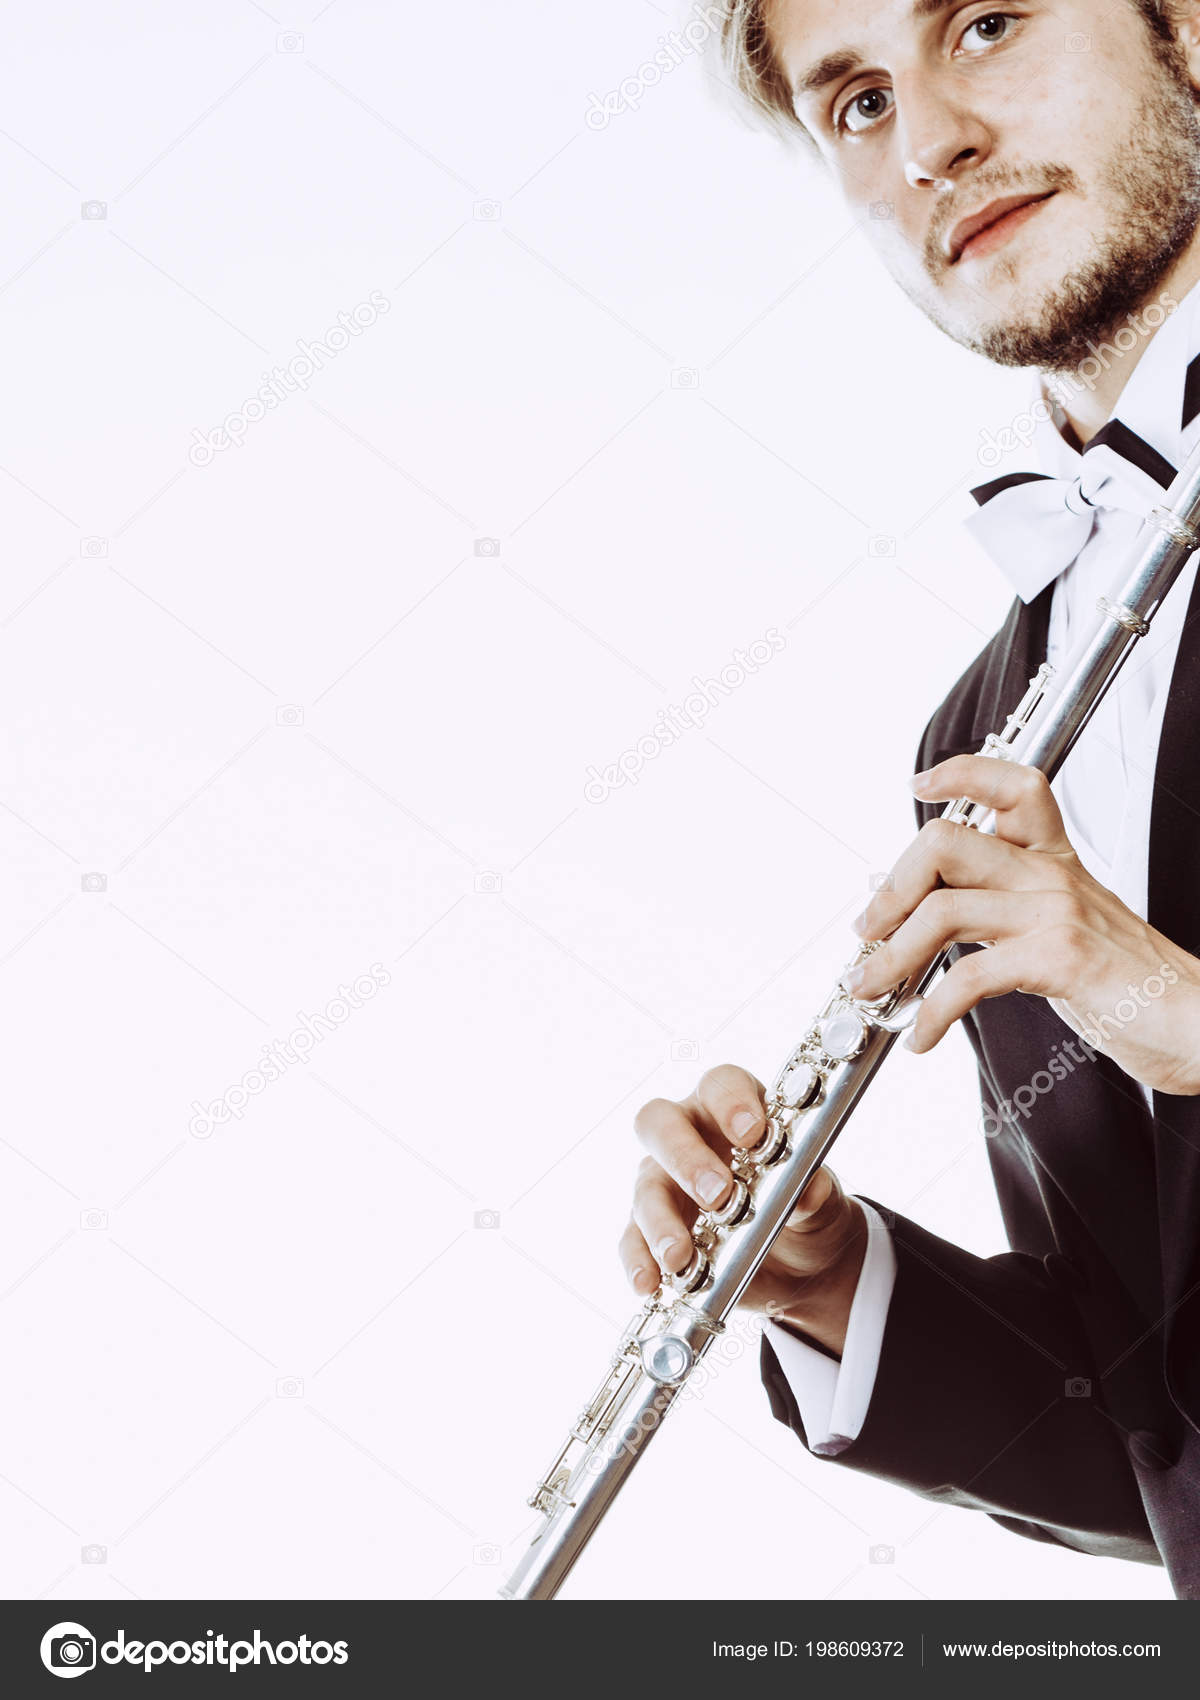 Classical Music Study Concept Male Flutist Musician